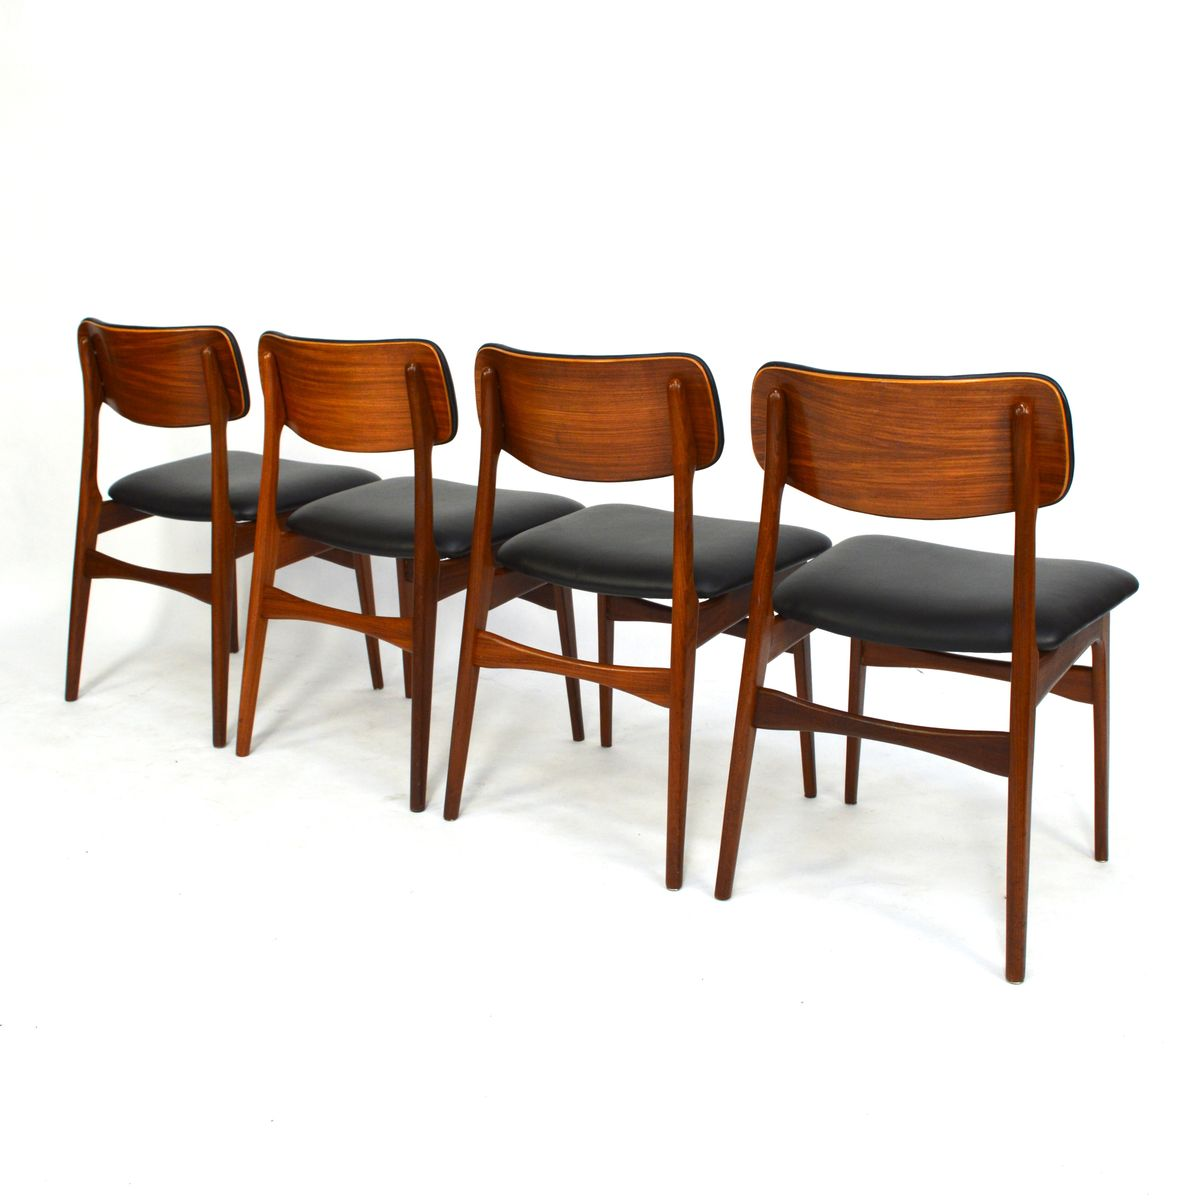 Scandinavian Dining Room Chairs: Scandinavian Teak & Leather Dining Chairs, 1960s, Set Of 7